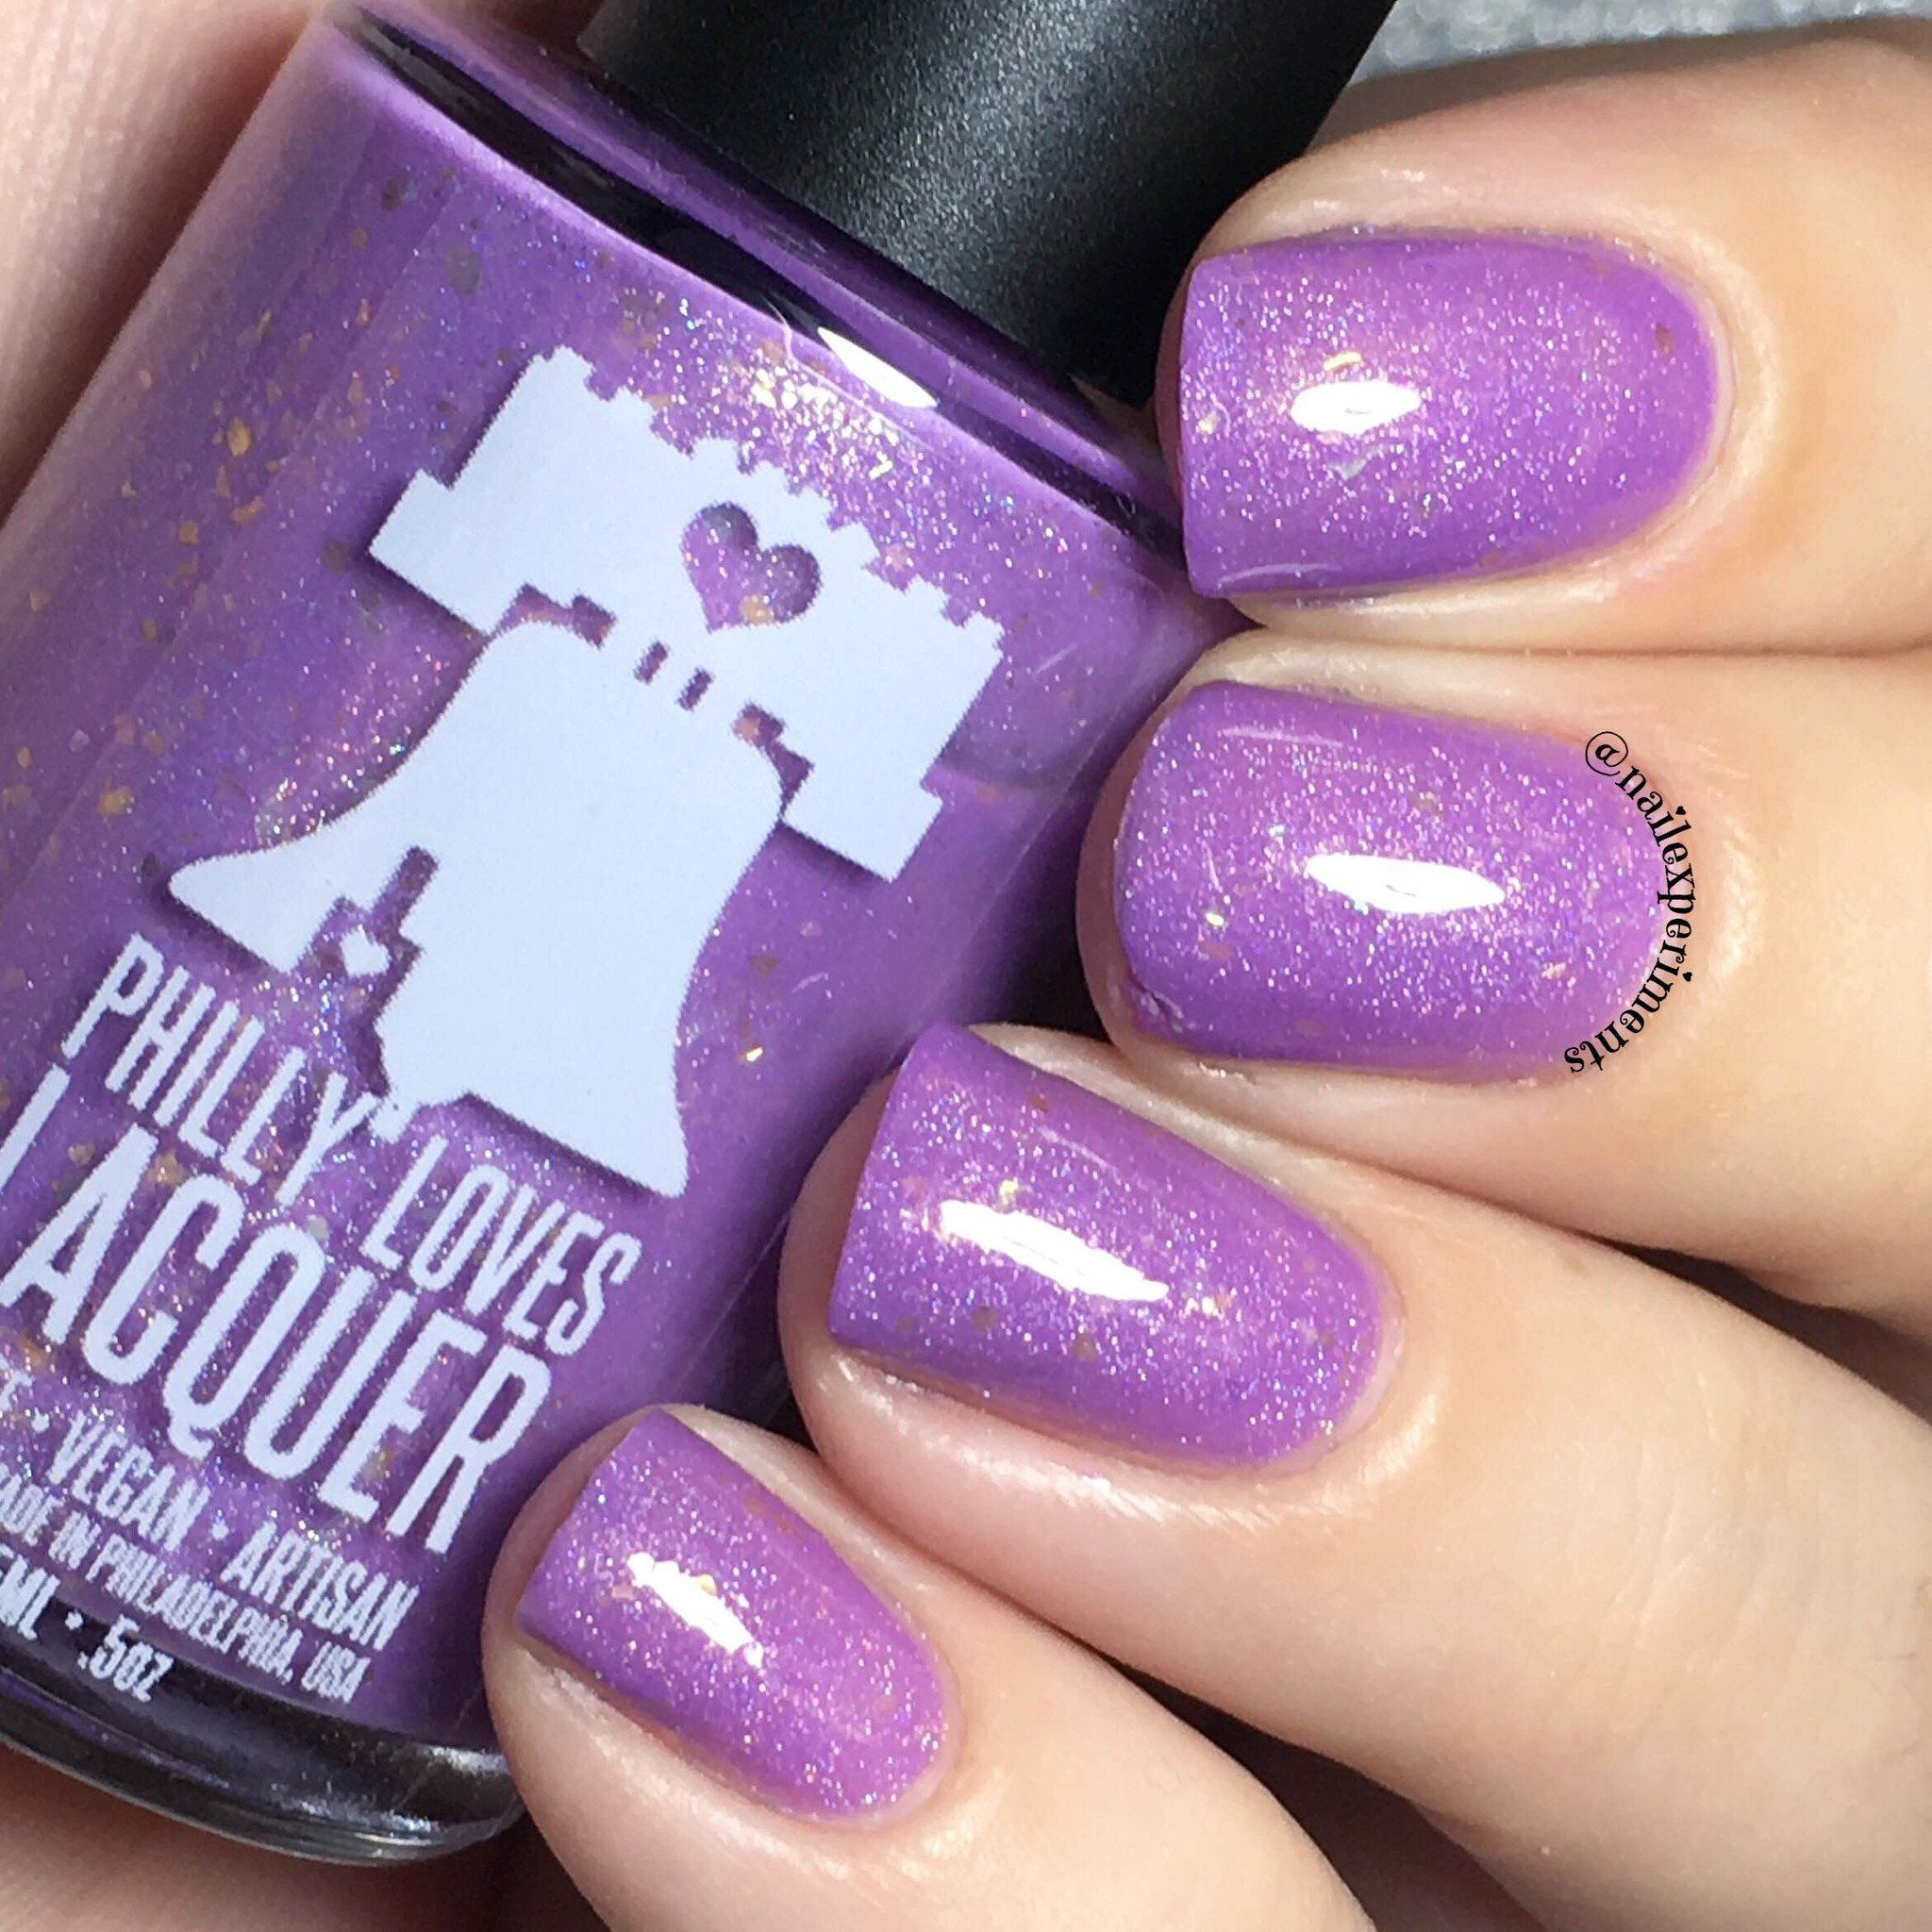 Philly Loves Lacquer: Is Your Muffin Buttered? | Possible Polish ...